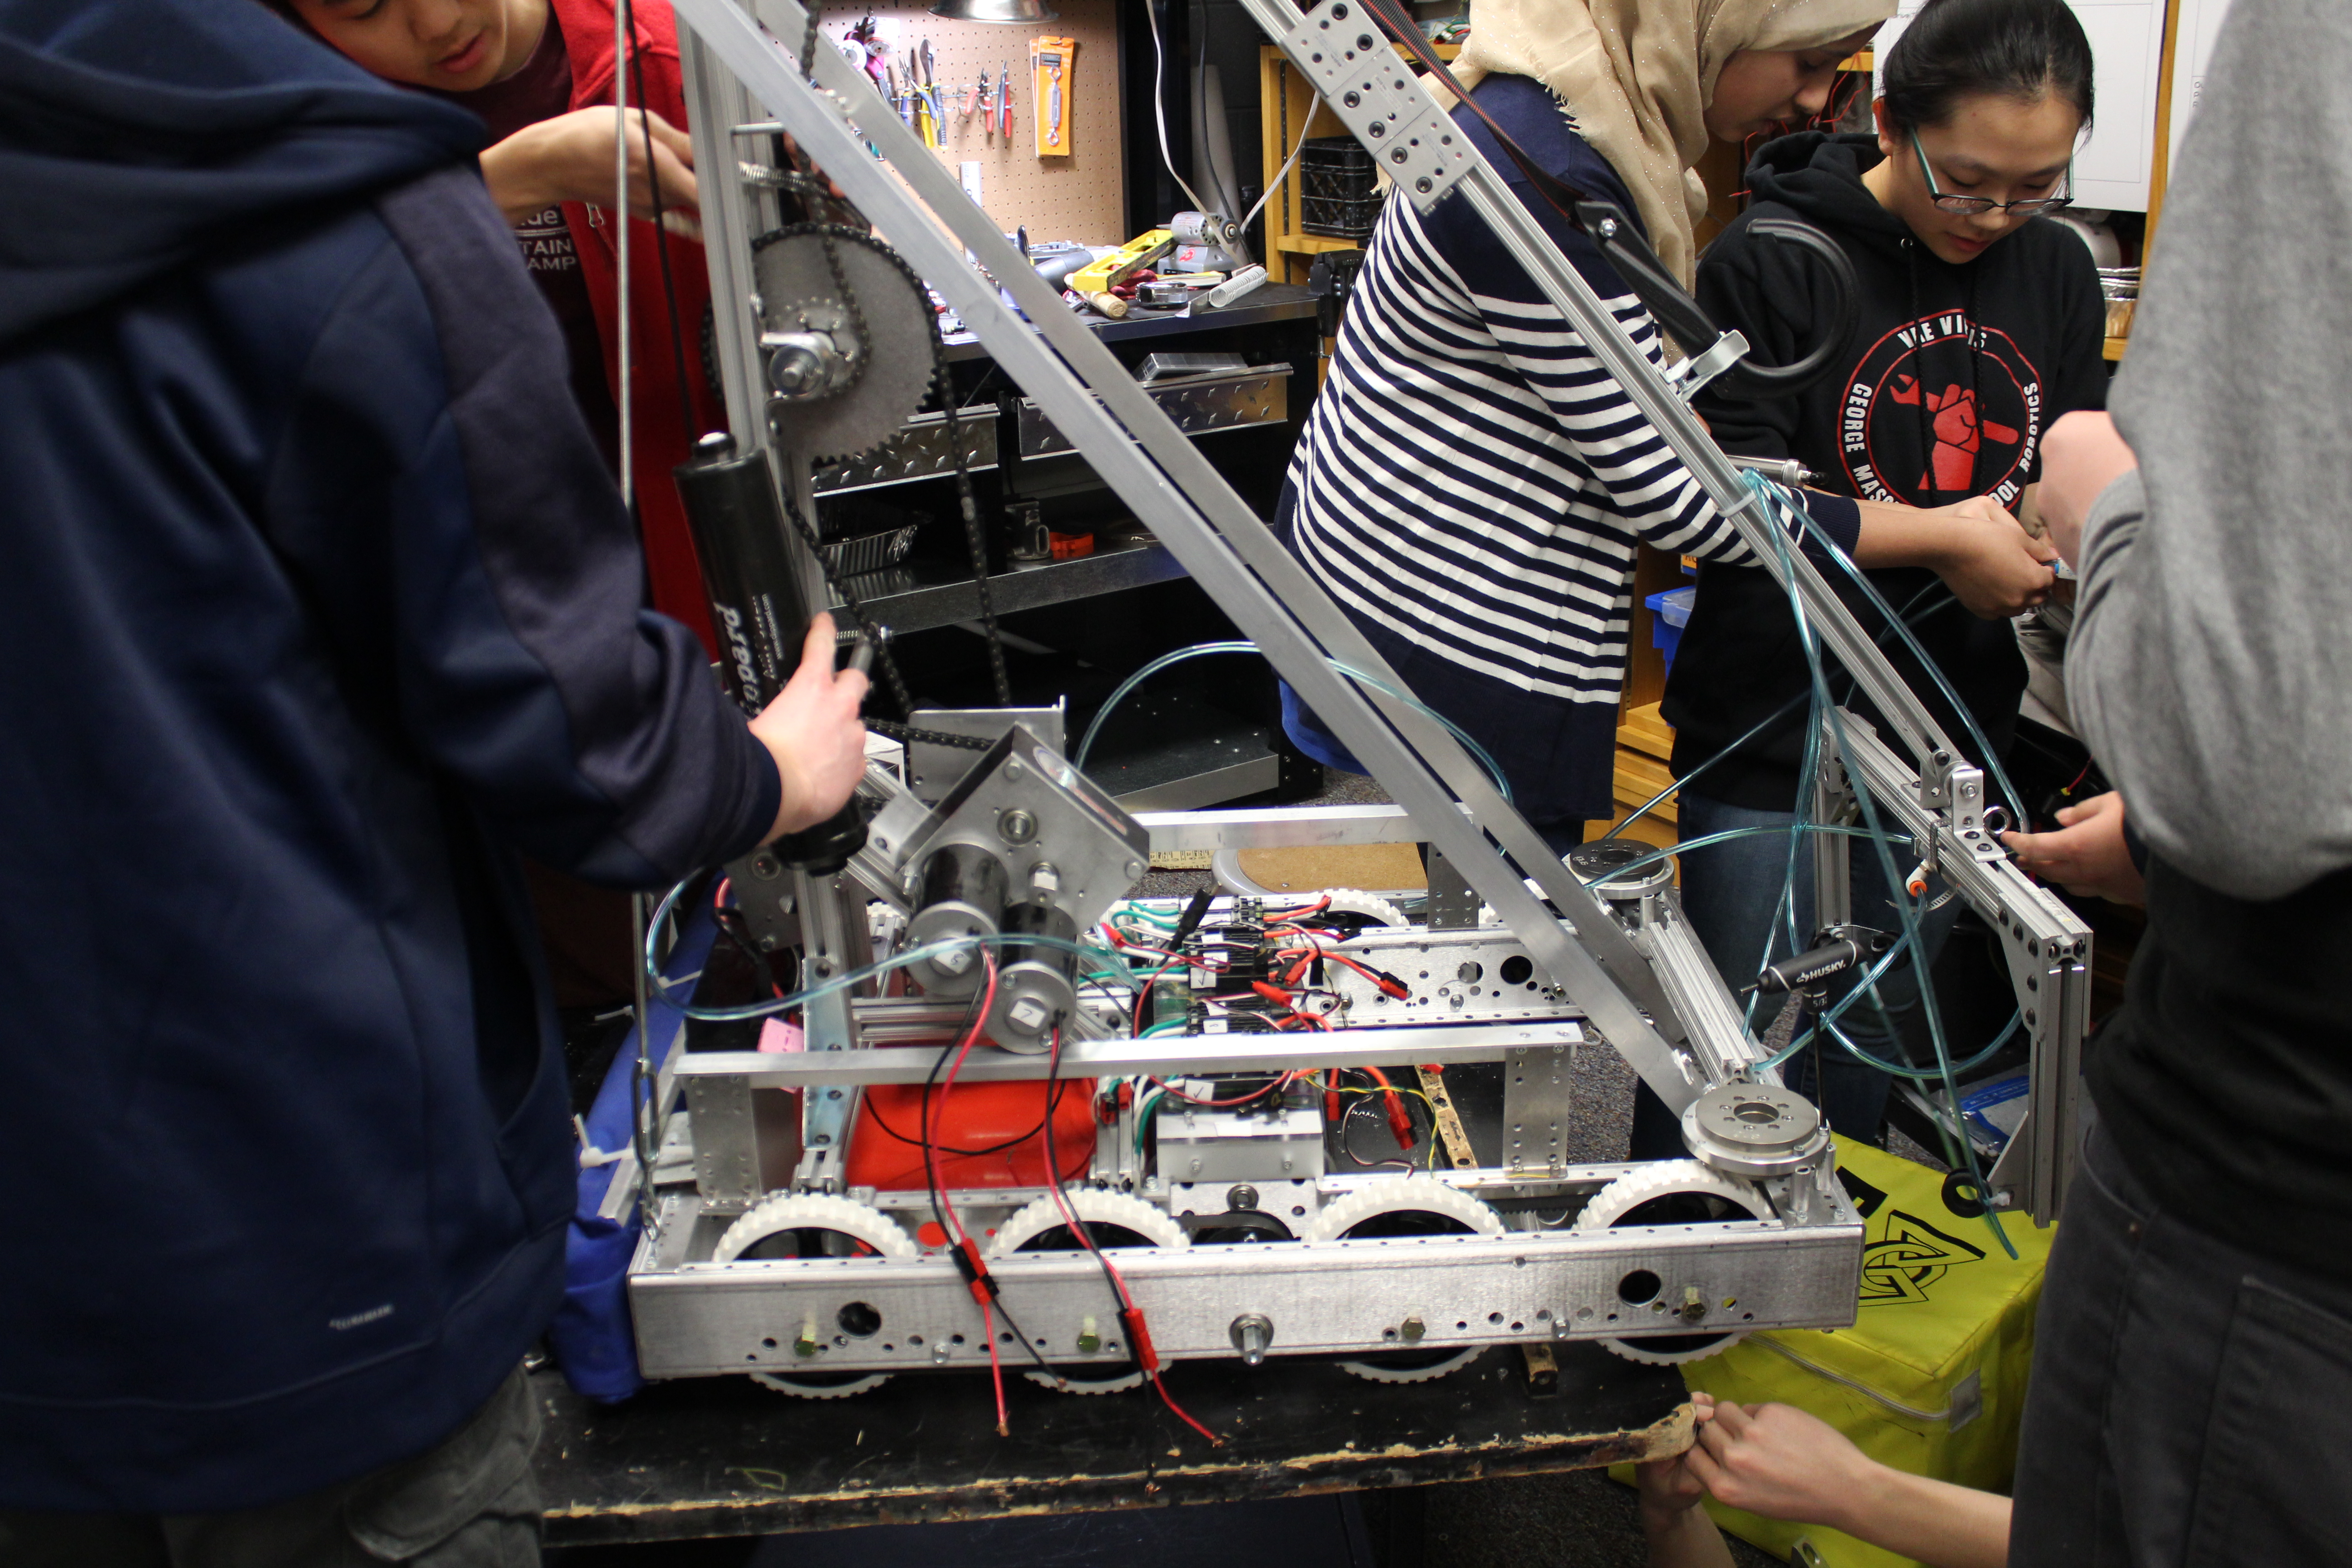 This shows us working on an earlier version of our robot.